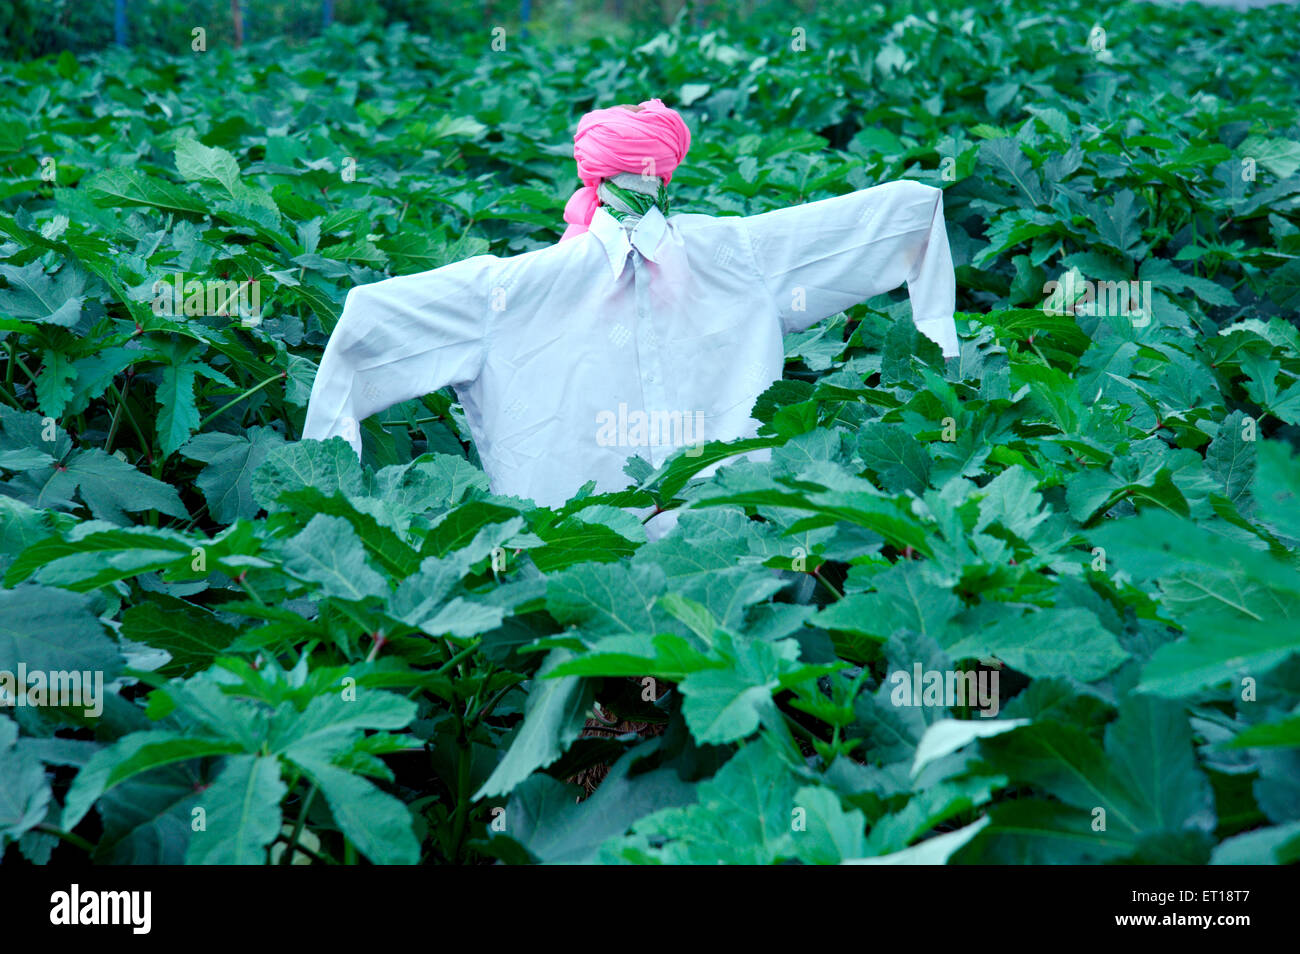 Statue of Scarecrow in the Field to Frighten Birds - Stock Image